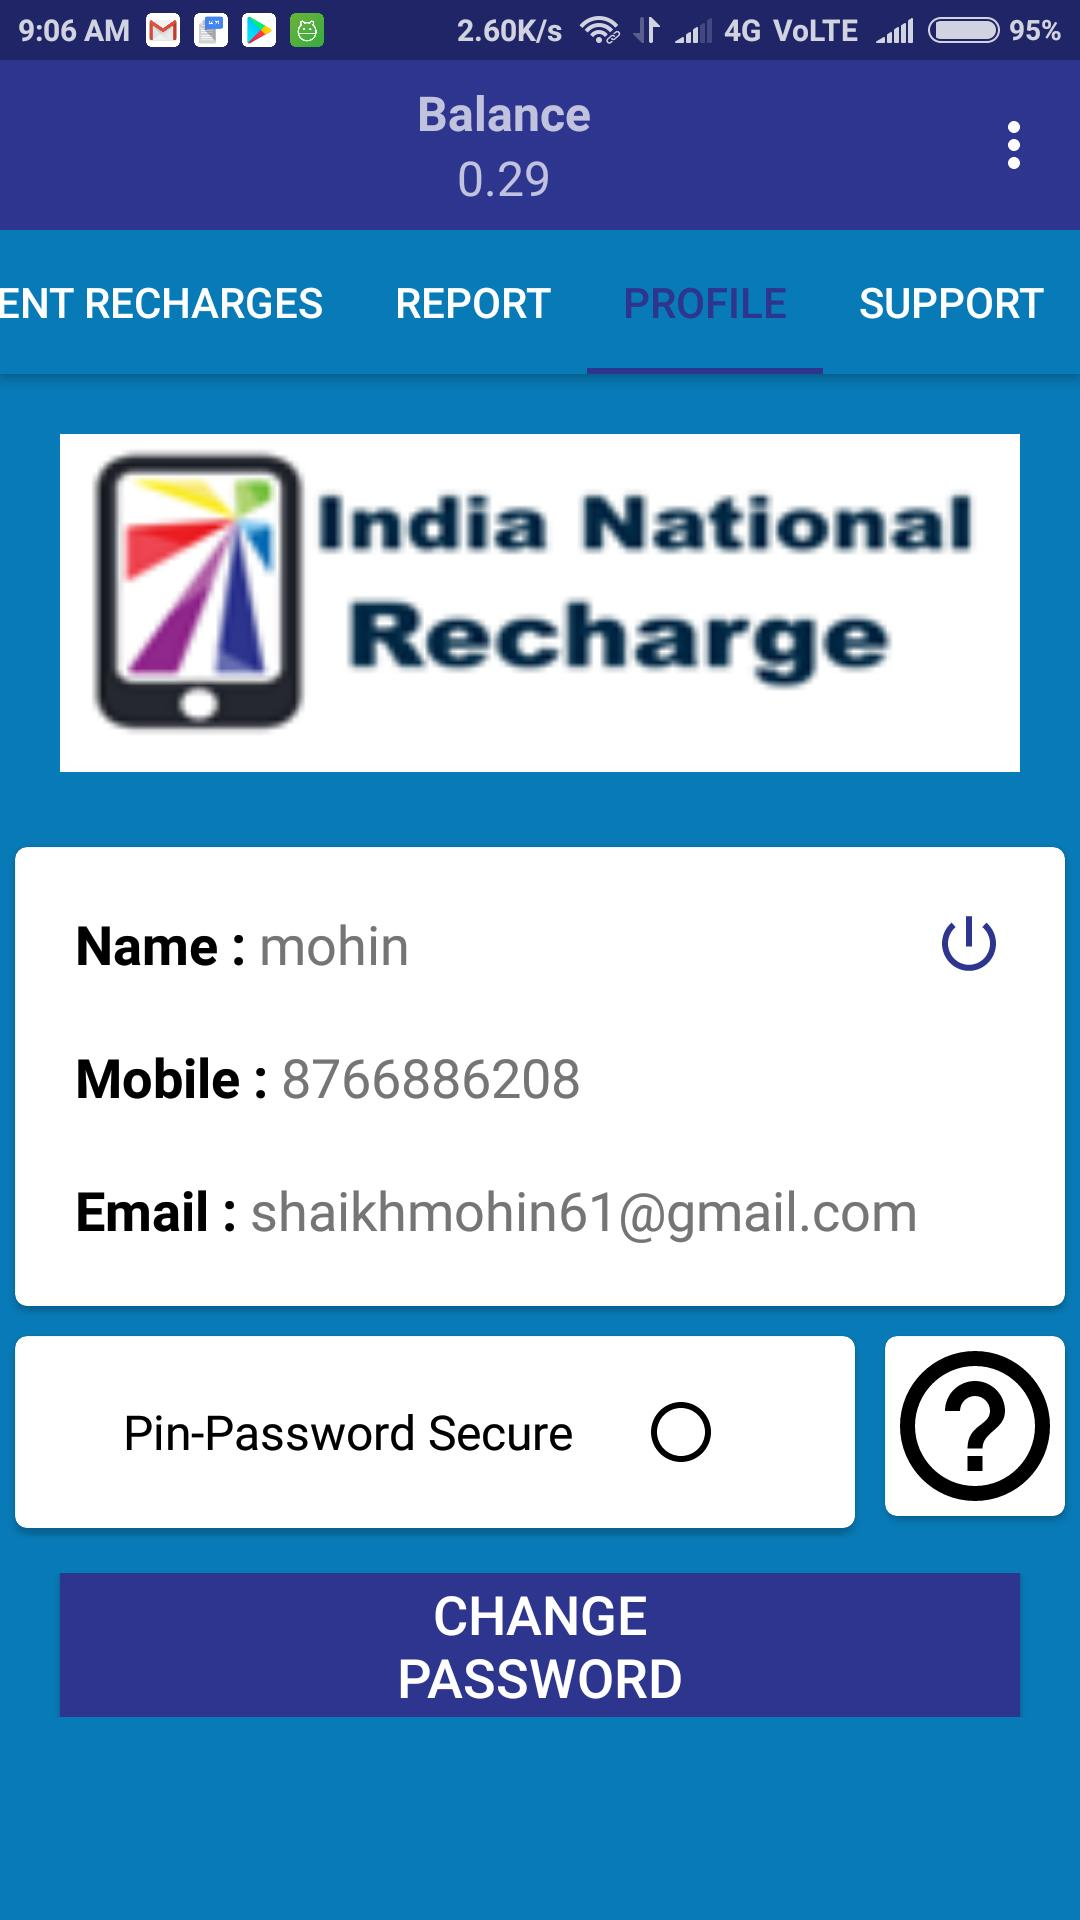 India National Recharge for Android - APK Download